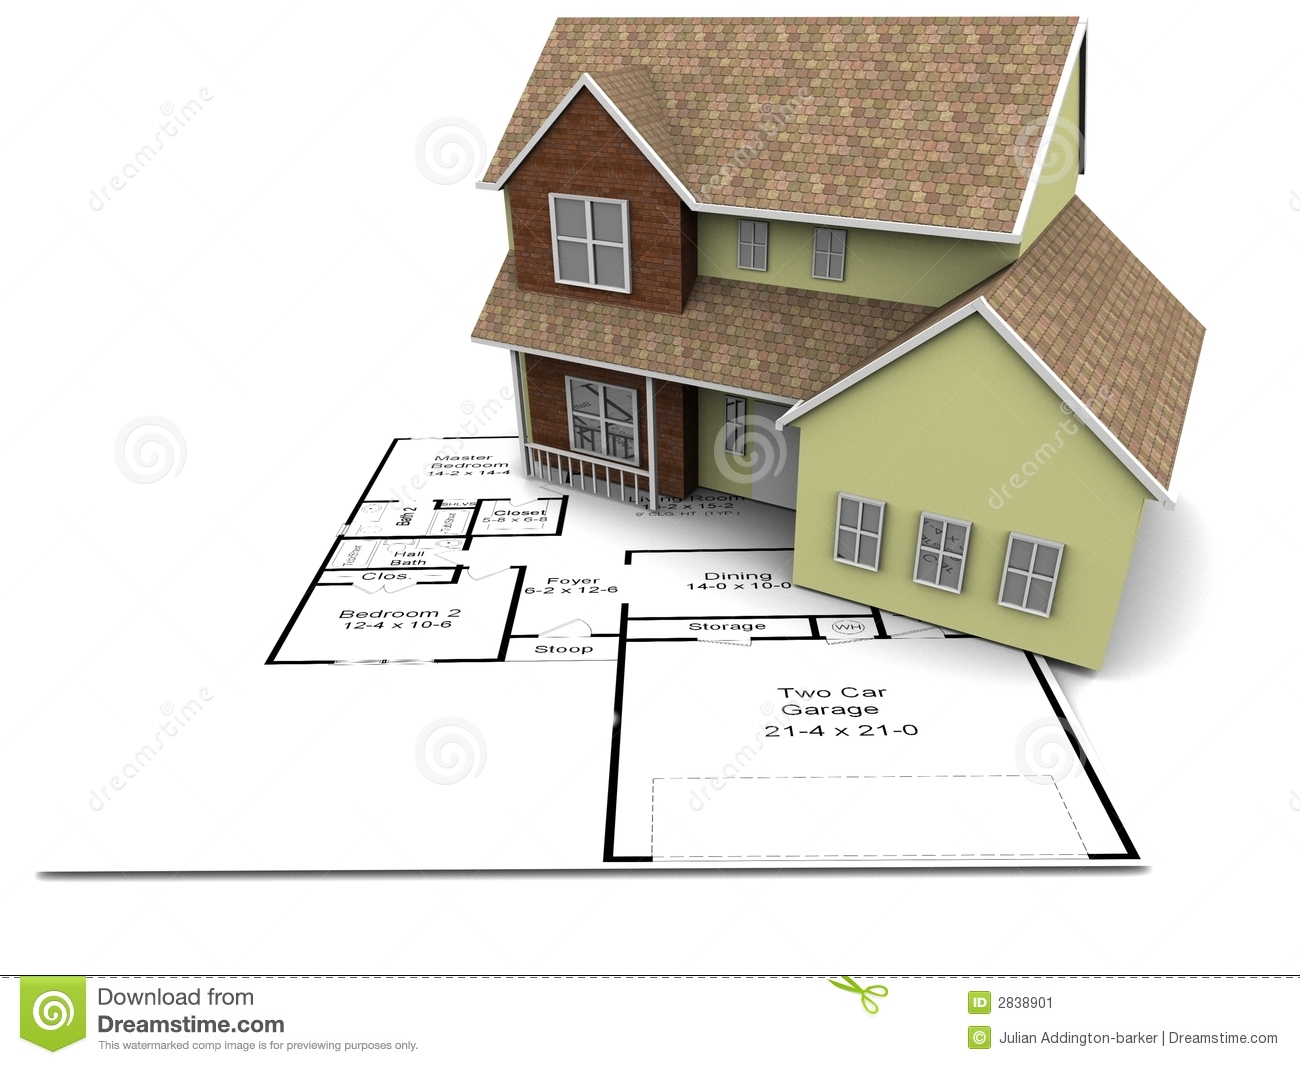 New house plans stock image image 2838901 for House blueprint images